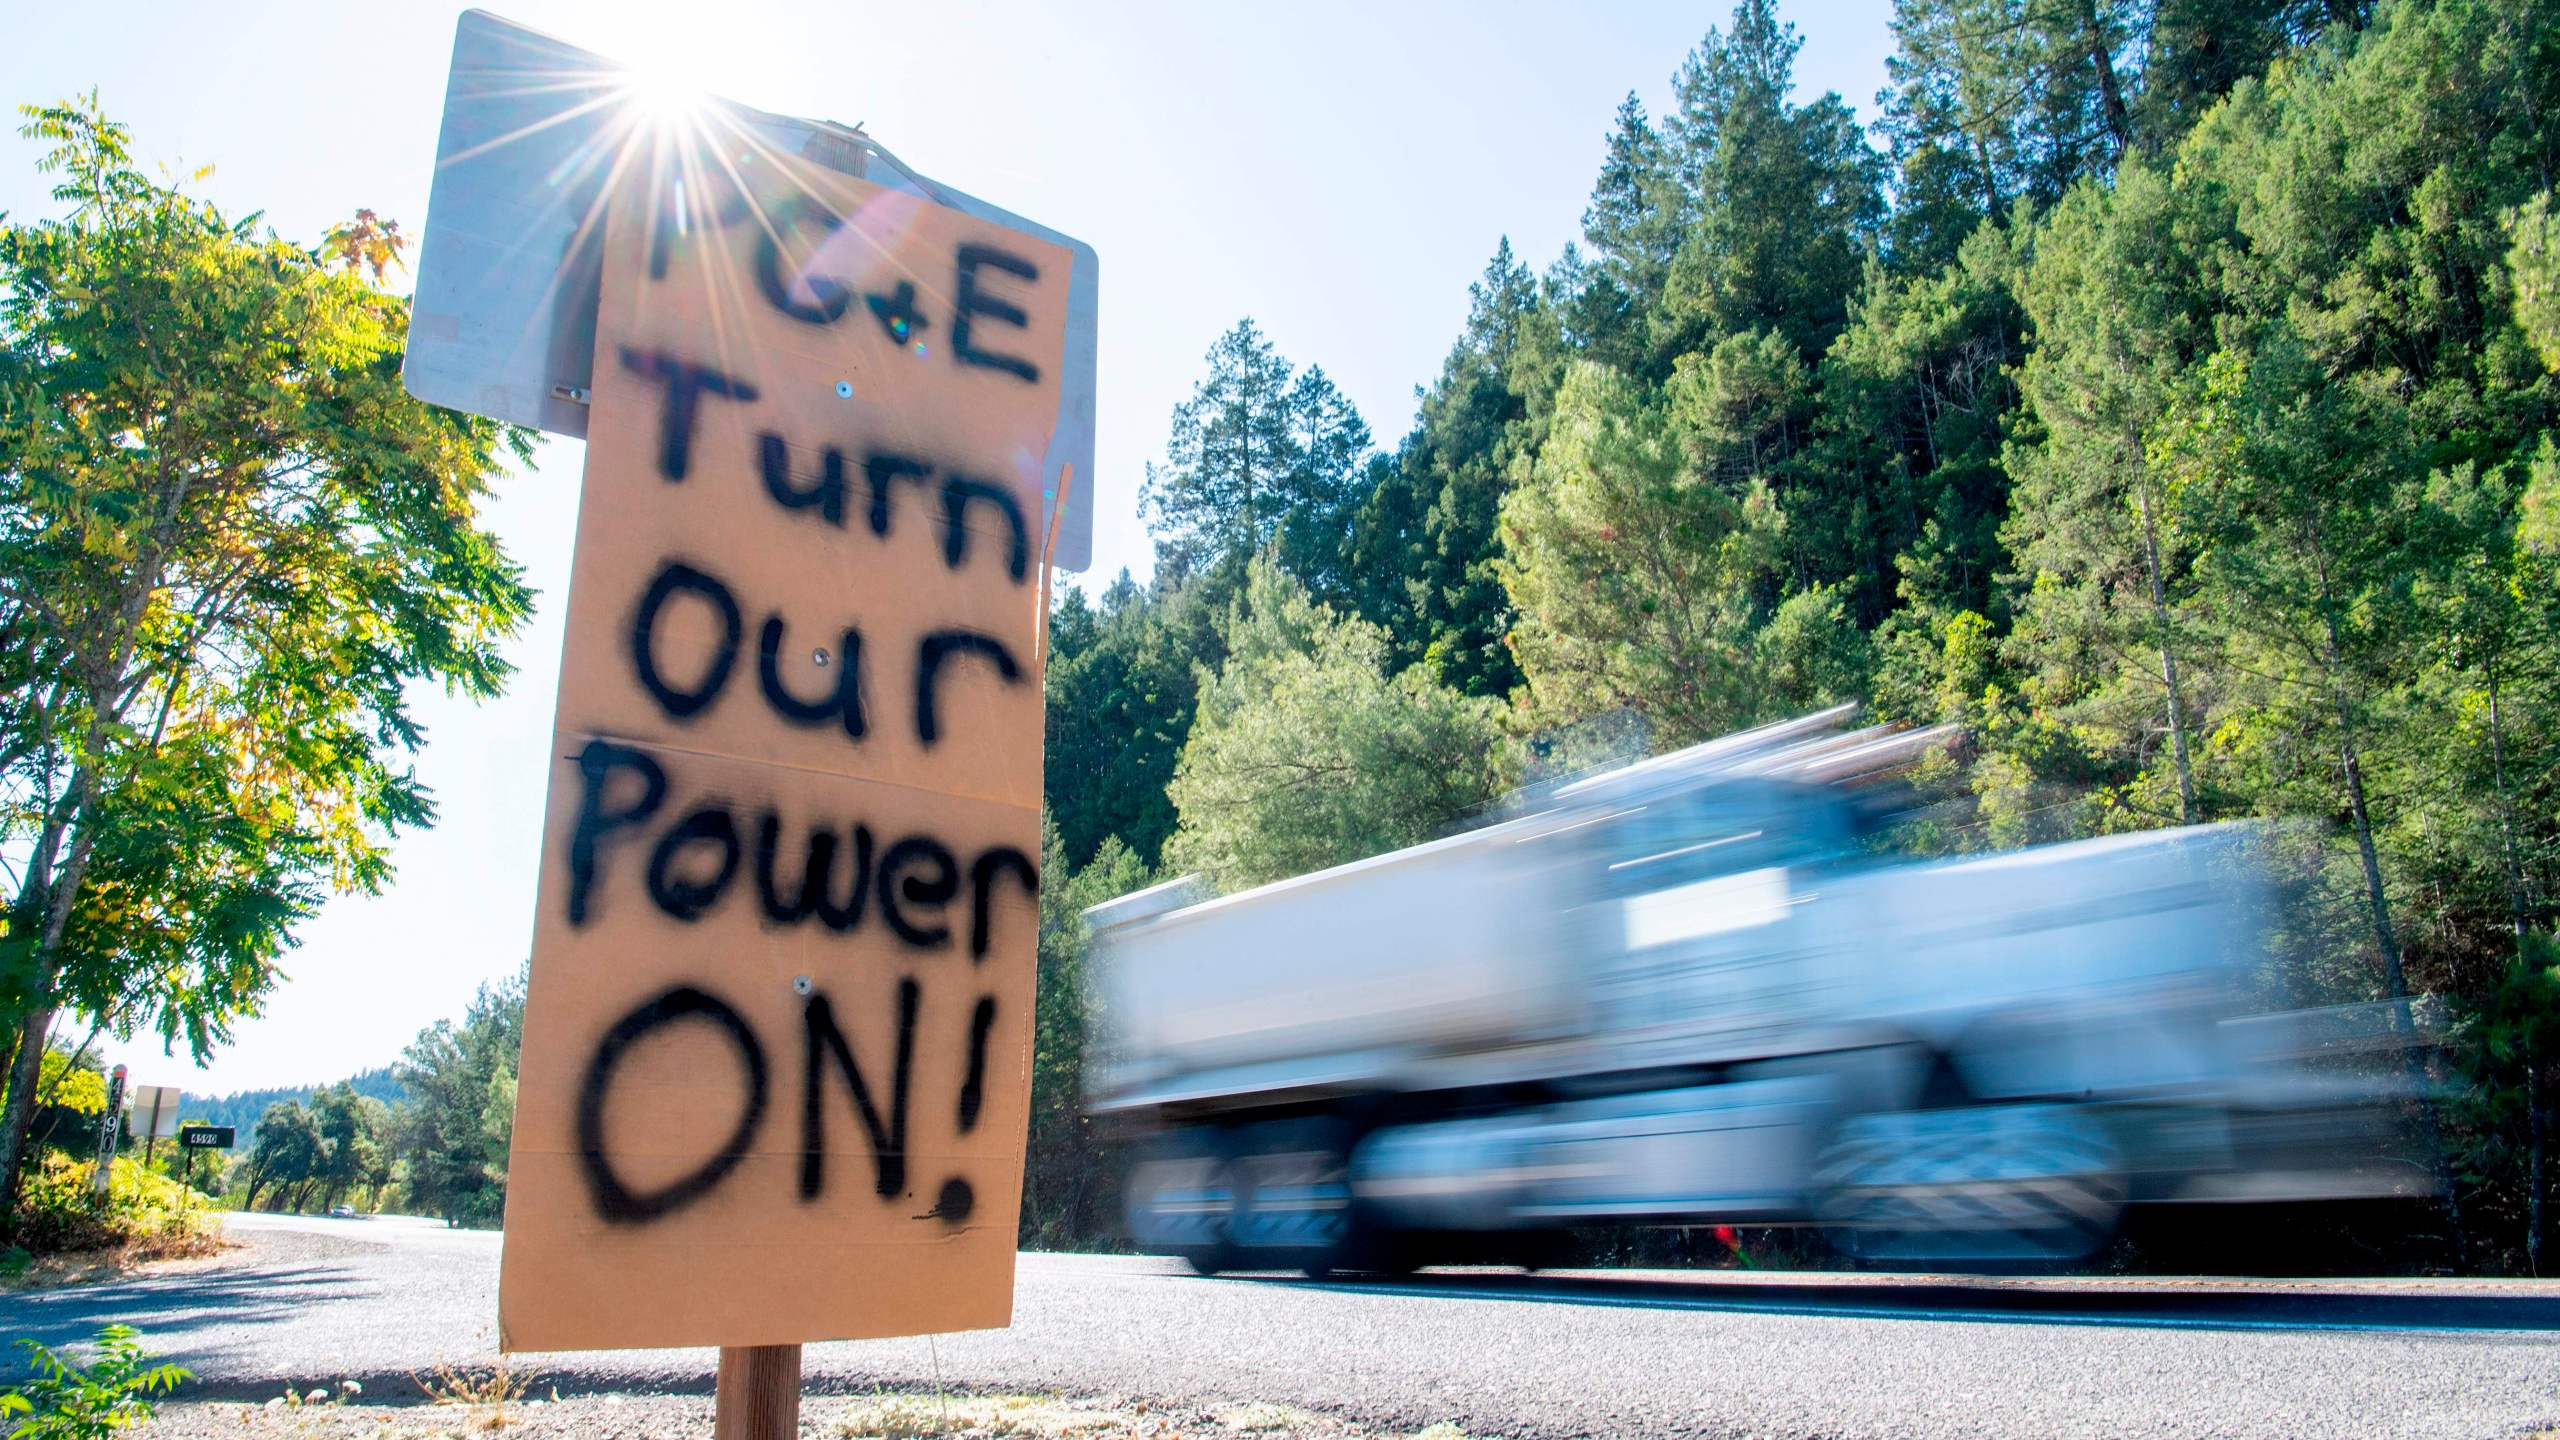 A sign calling for PG&E to turn the power back on is seen on the side of the road during a blackout in Calistoga on Oct. 10, 2019. (Credit: Josh Edelson / AFP via Getty Images)